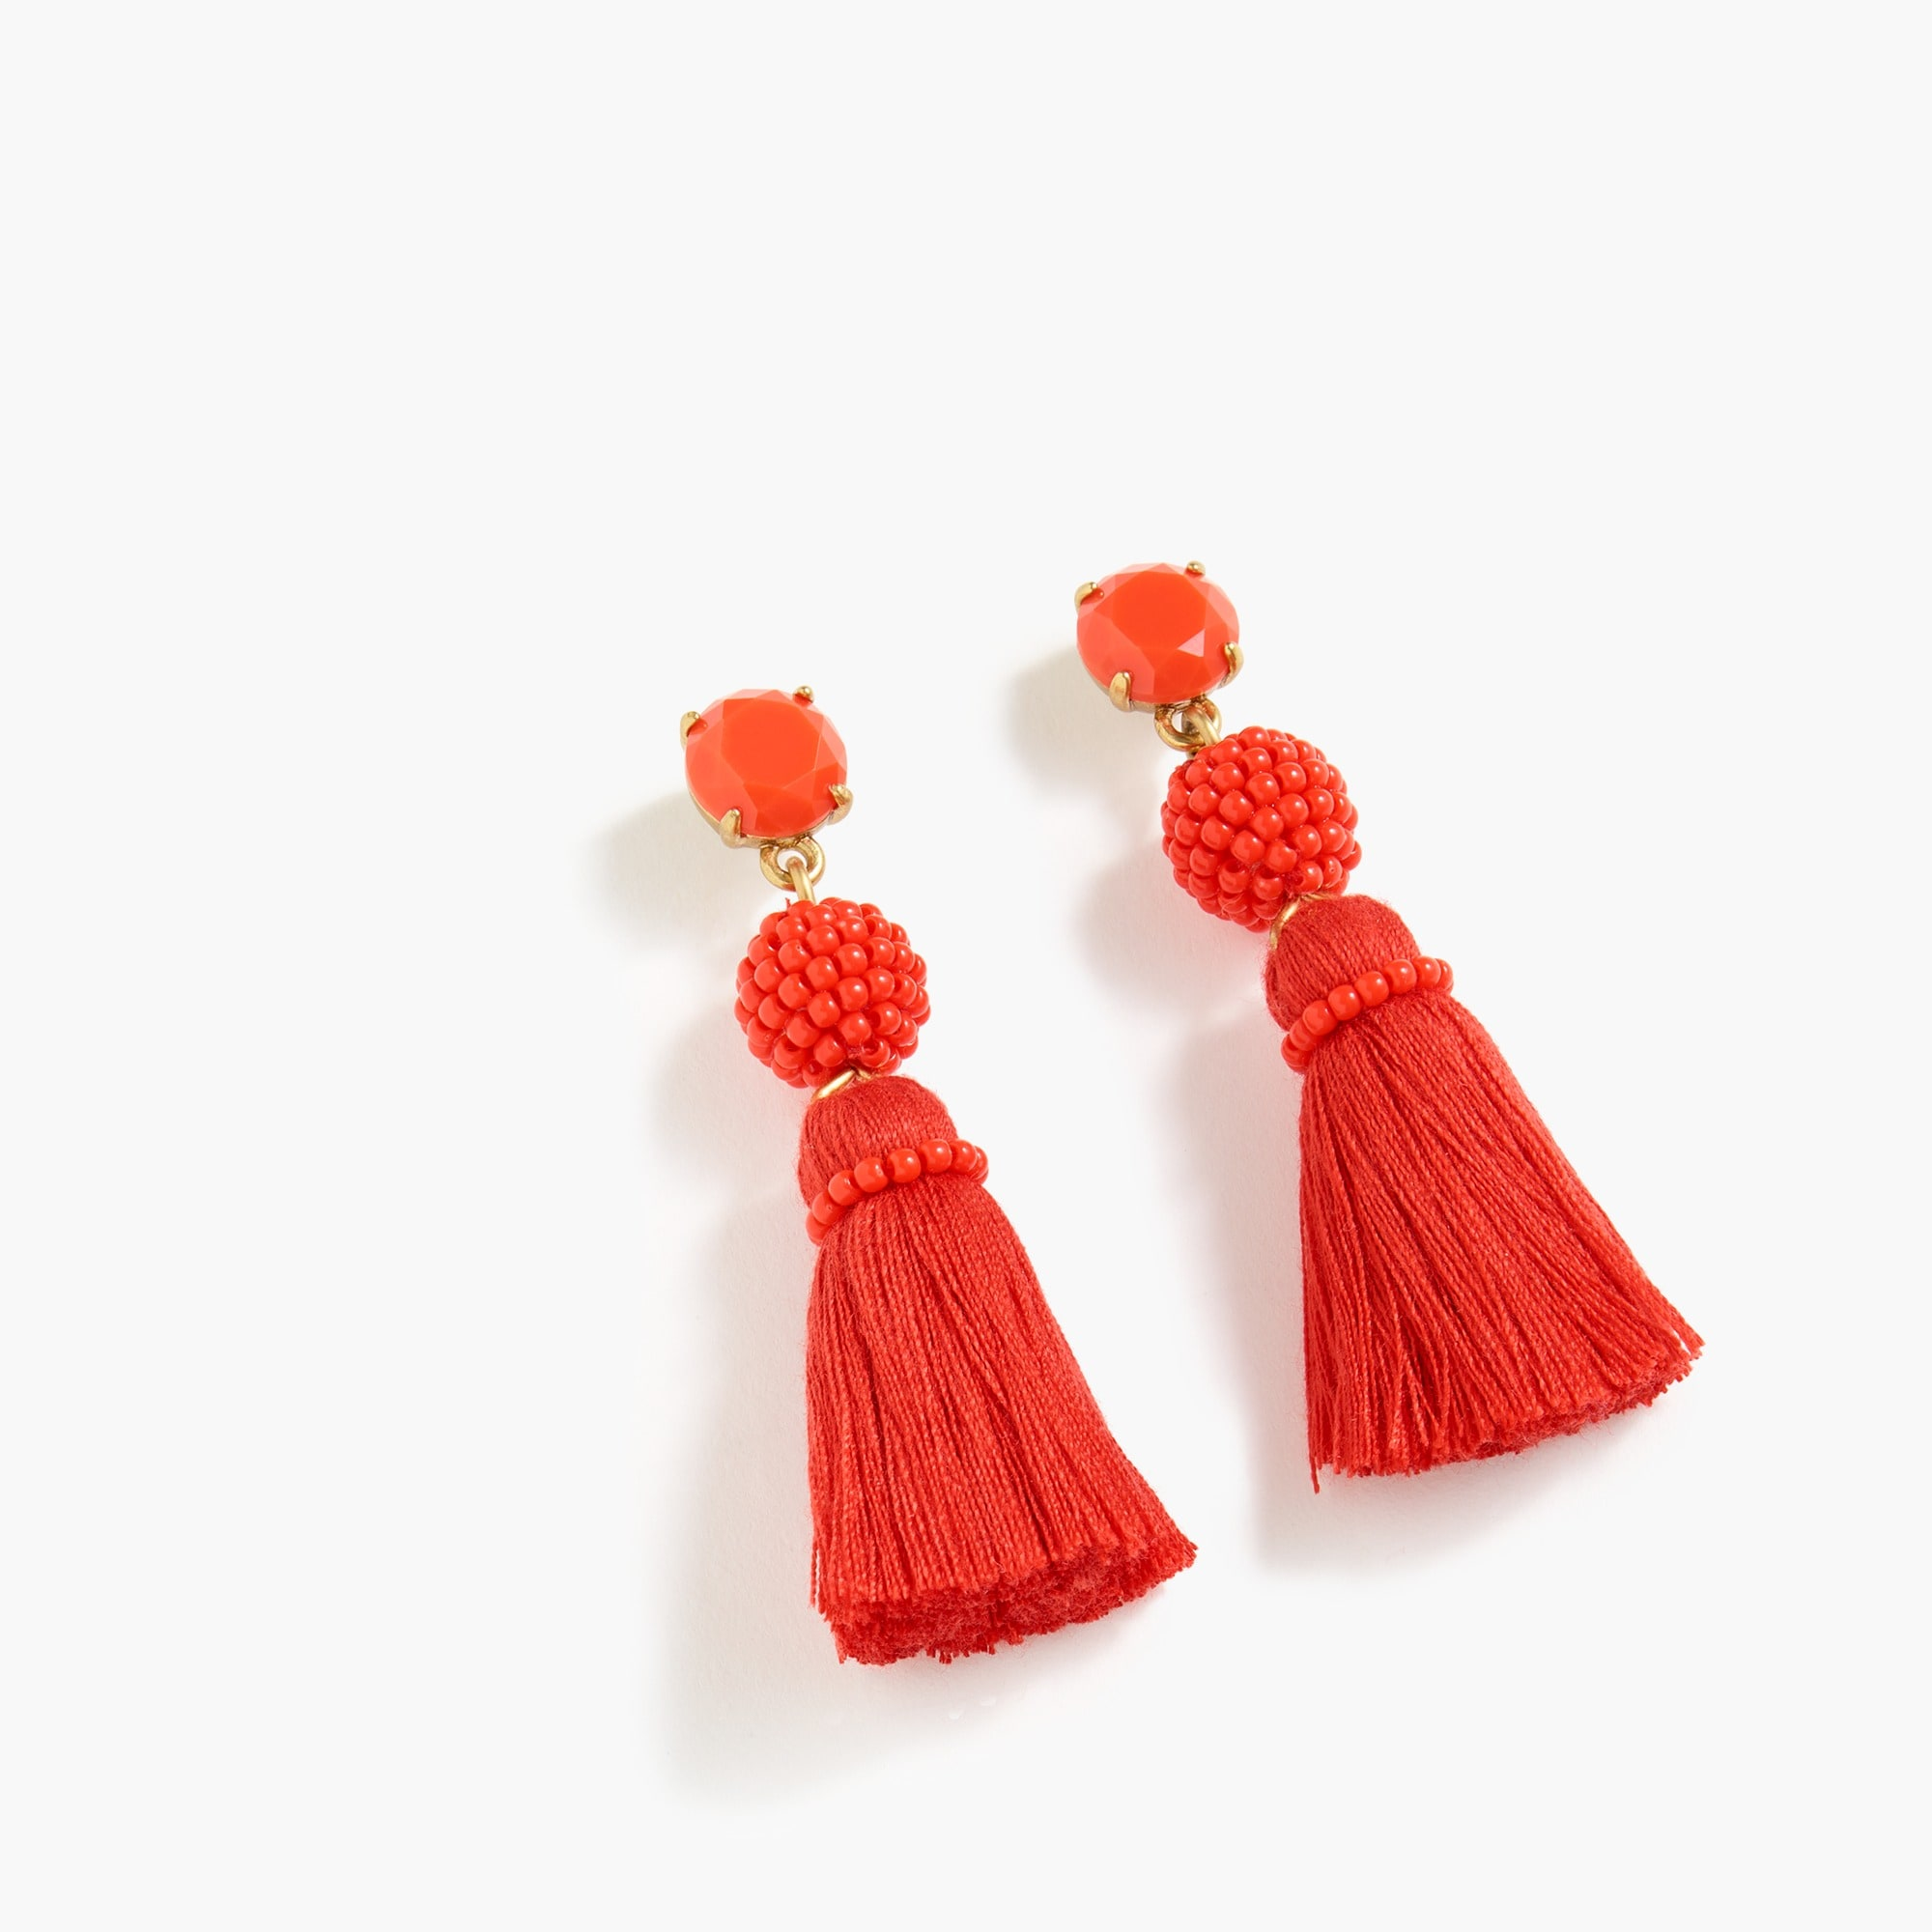 Bead and tassel earrings women new arrivals c